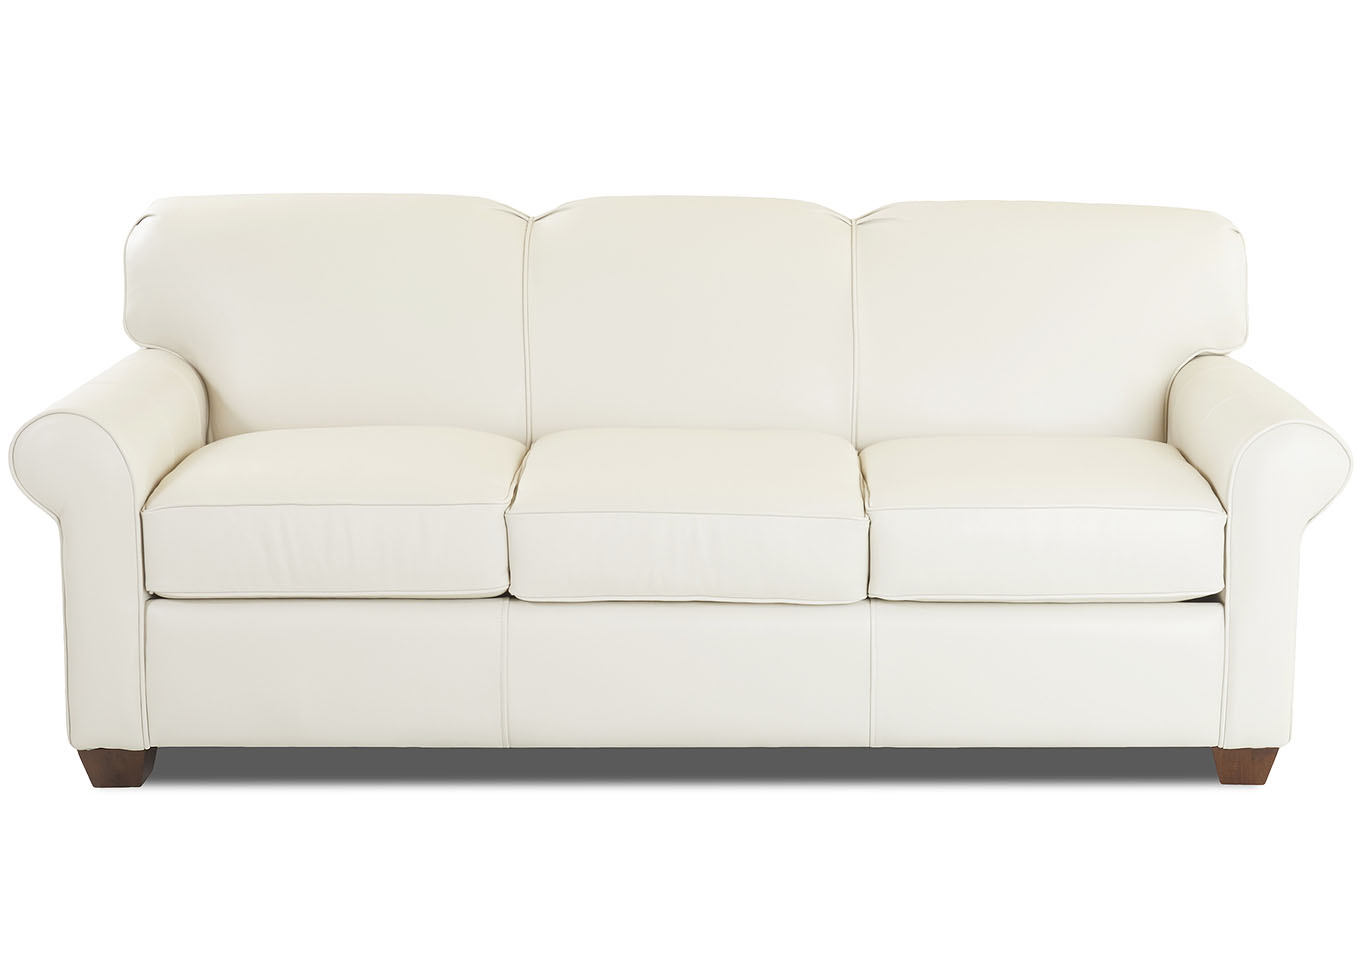 - Mayhew White Leather Sleeper Sofa Hornell Furniture Outlet